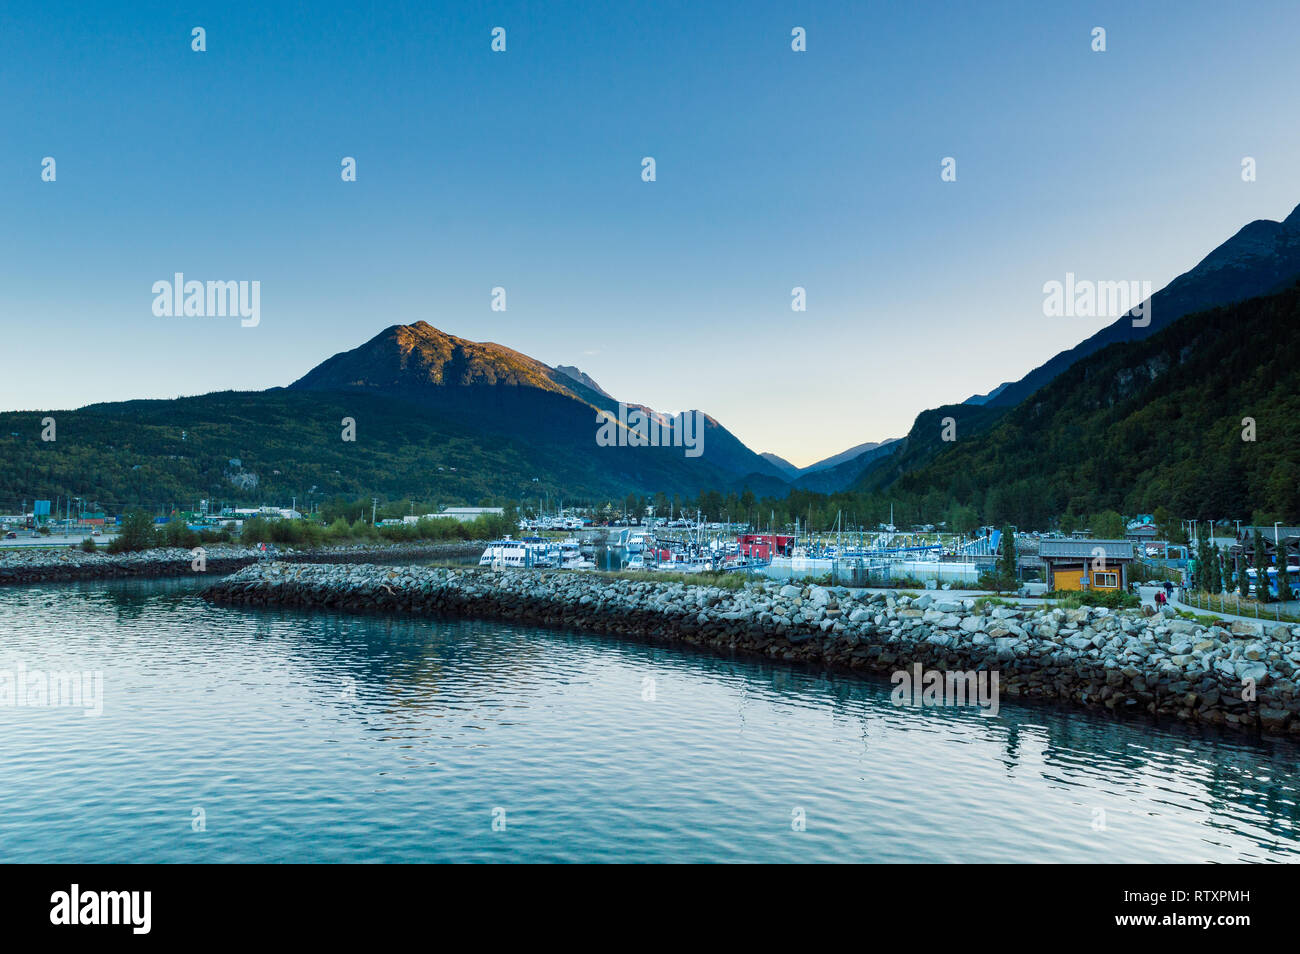 September 15, 2018 - Skagway, AK: Calm early morning of the Small Boat Harbour at daybreak. - Stock Image